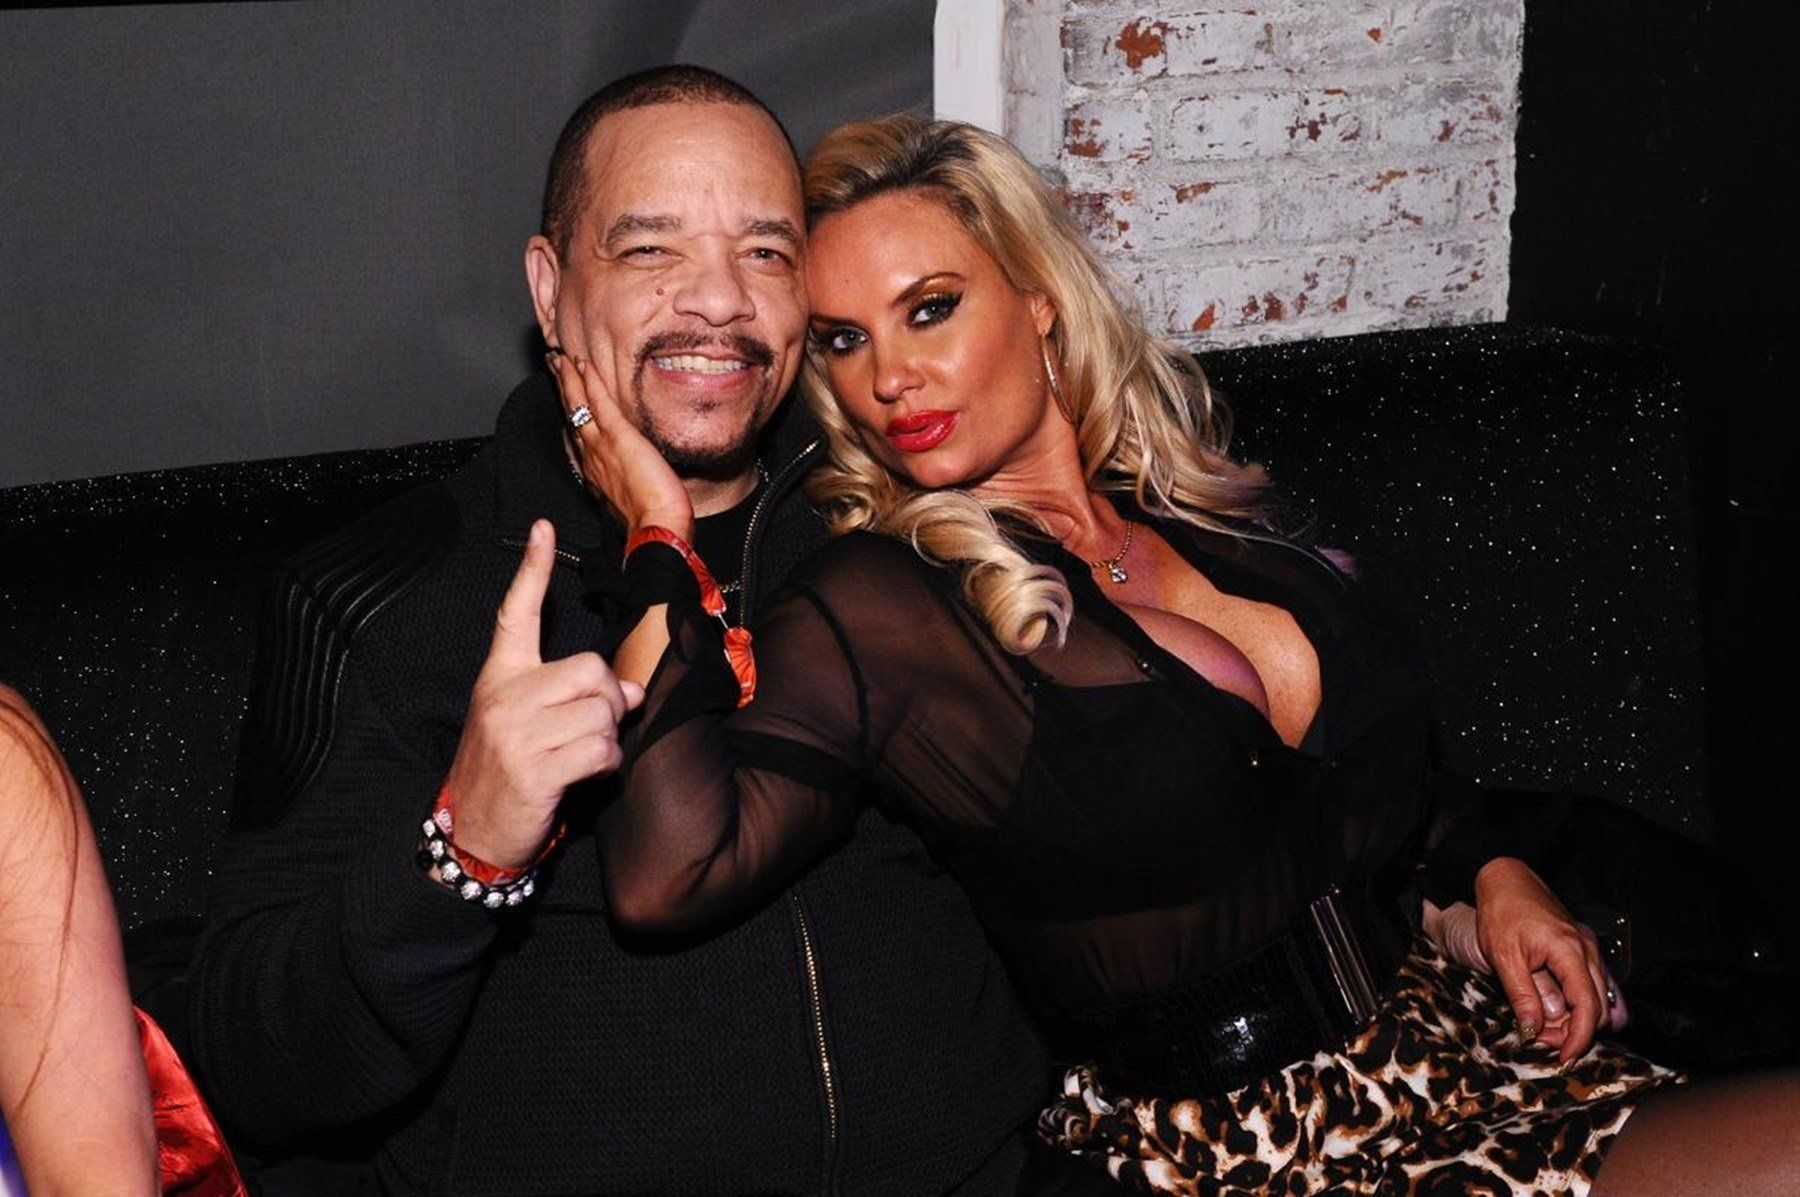 Ice-T's Wife, Coco Austin, Looks Like Royalty In New Photos In Skin-Colored Outfit -- She Is On Top Of Her Game #CocoAustin, #IceT celebrityinsider.org #Entertainment #celebrityinsider #celebritynews #celebrities #celebrity